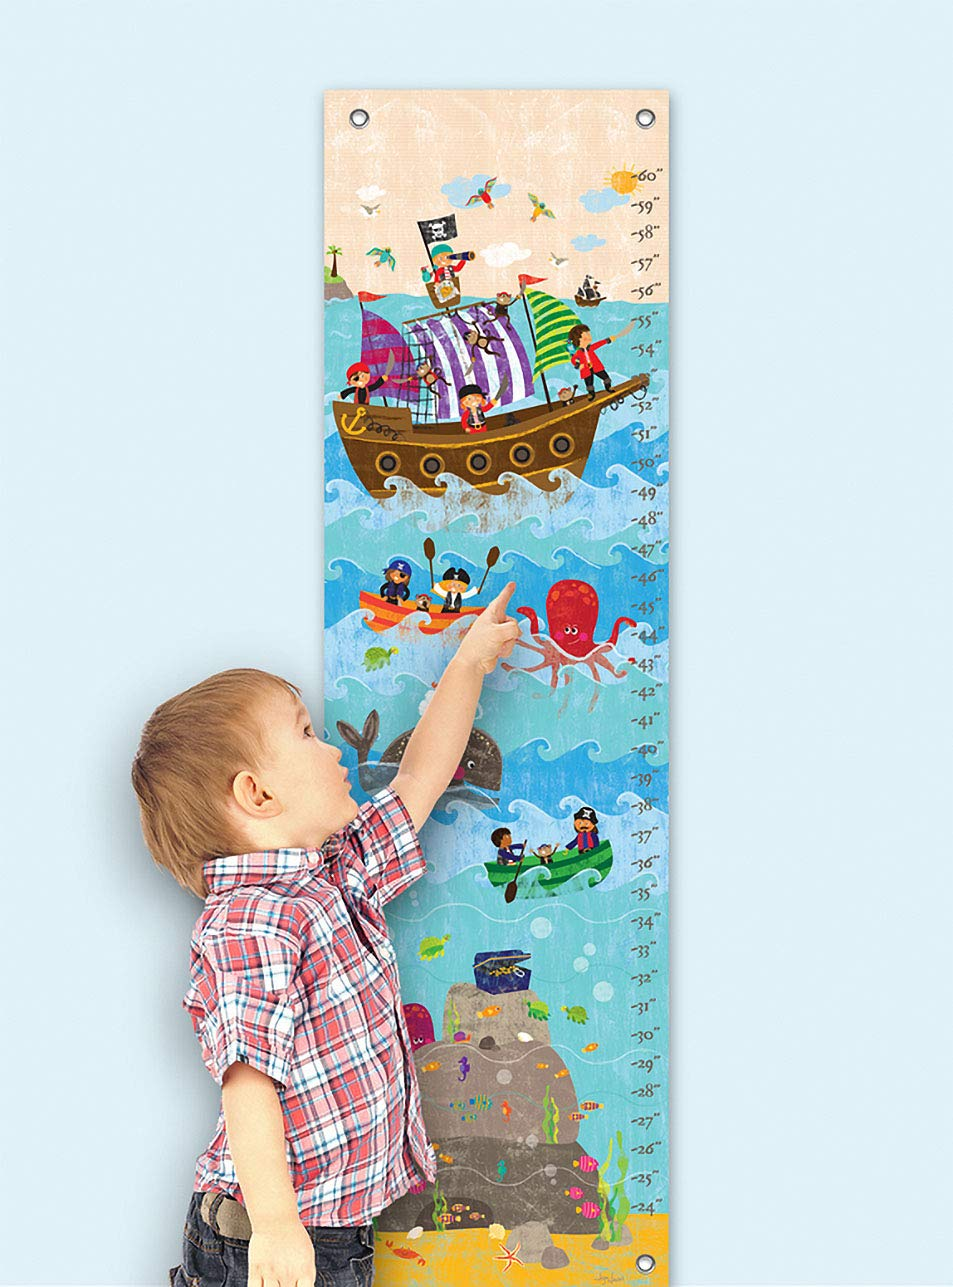 Swashbuckling Good Time 12 x 42 12 x 42 Fine Art for Kids NB20498 Oopsy Daisy Growth Chart